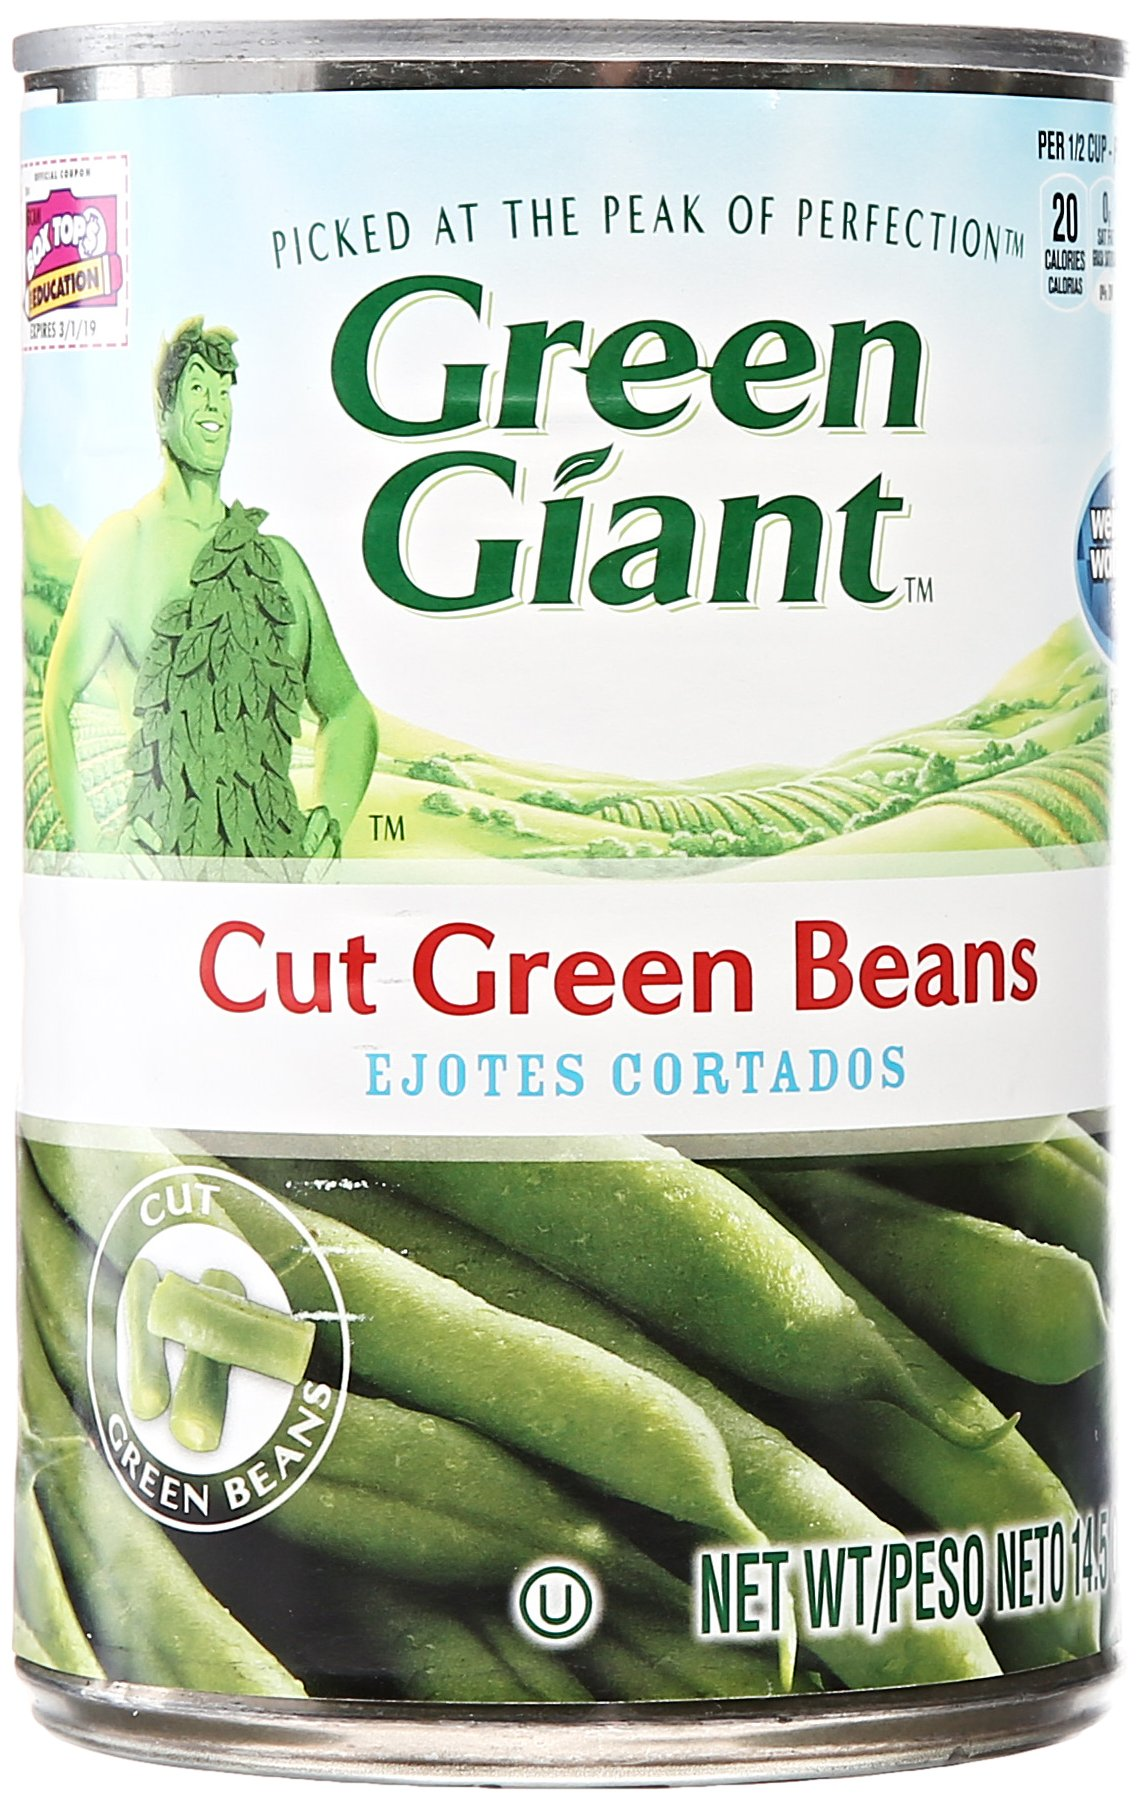 Green Giant Green Beans Cut, 14.5 oz by Green Giant